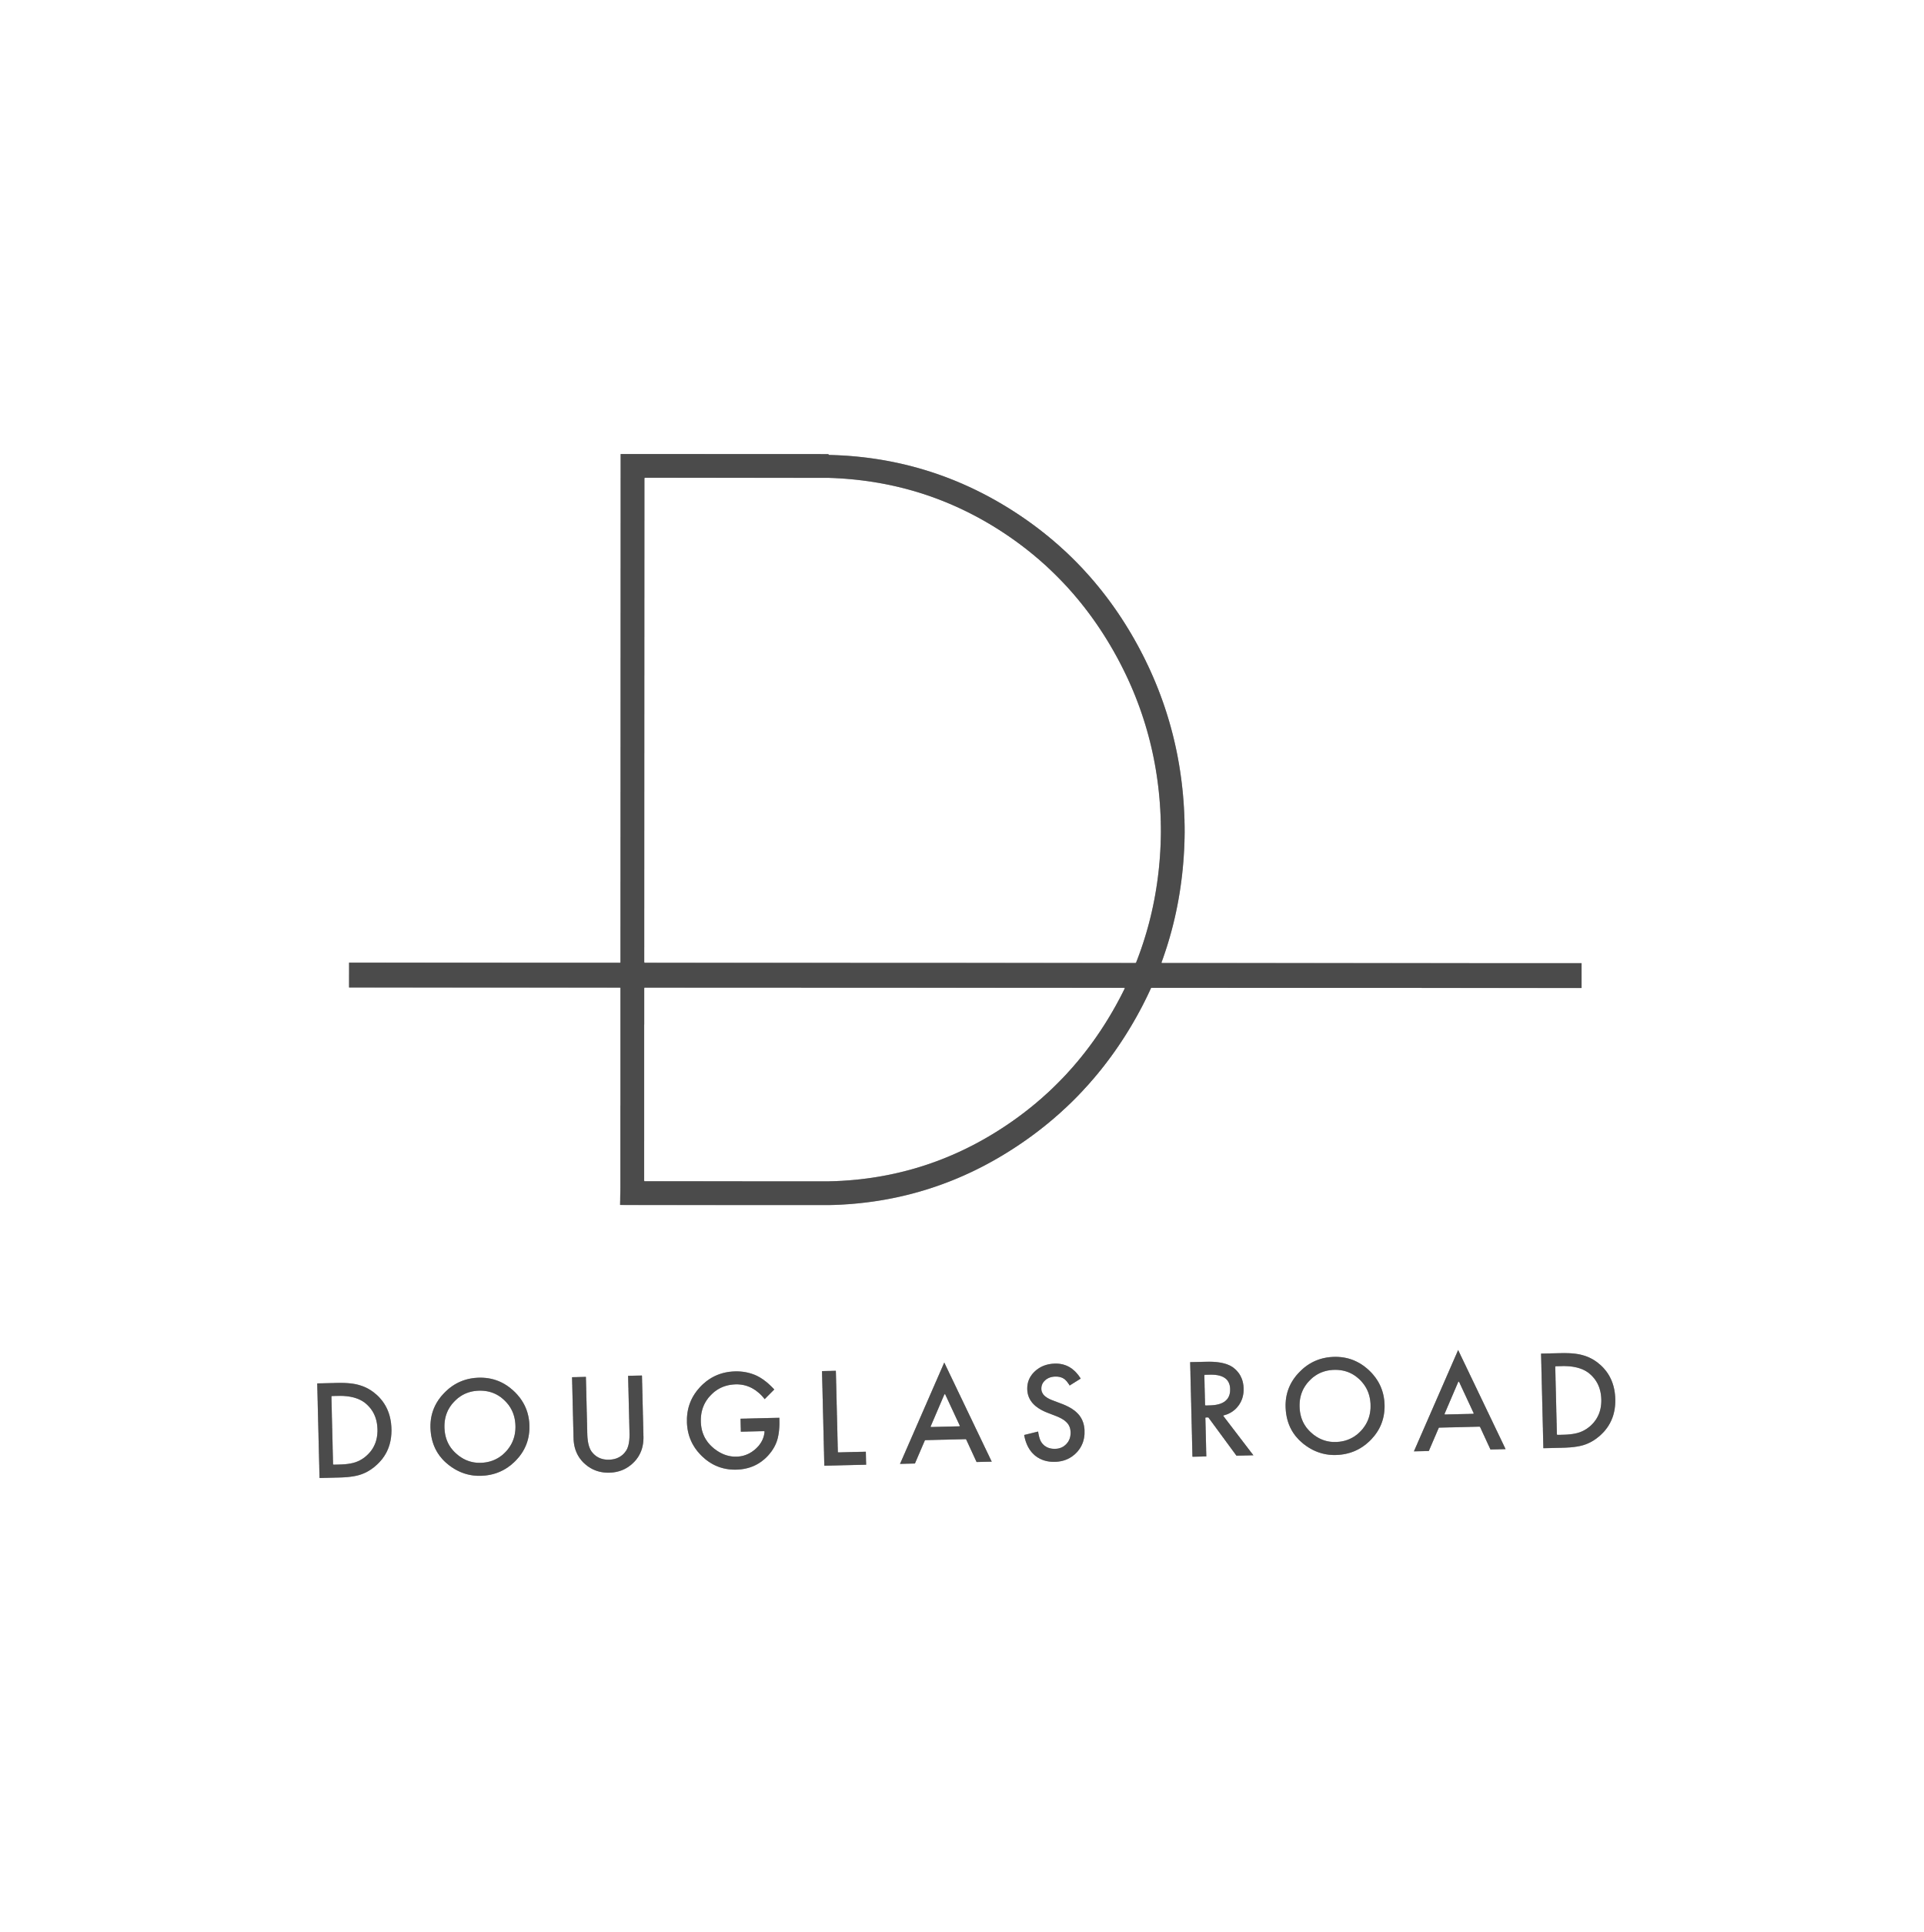 Douglas road logo_white   copy copy.png